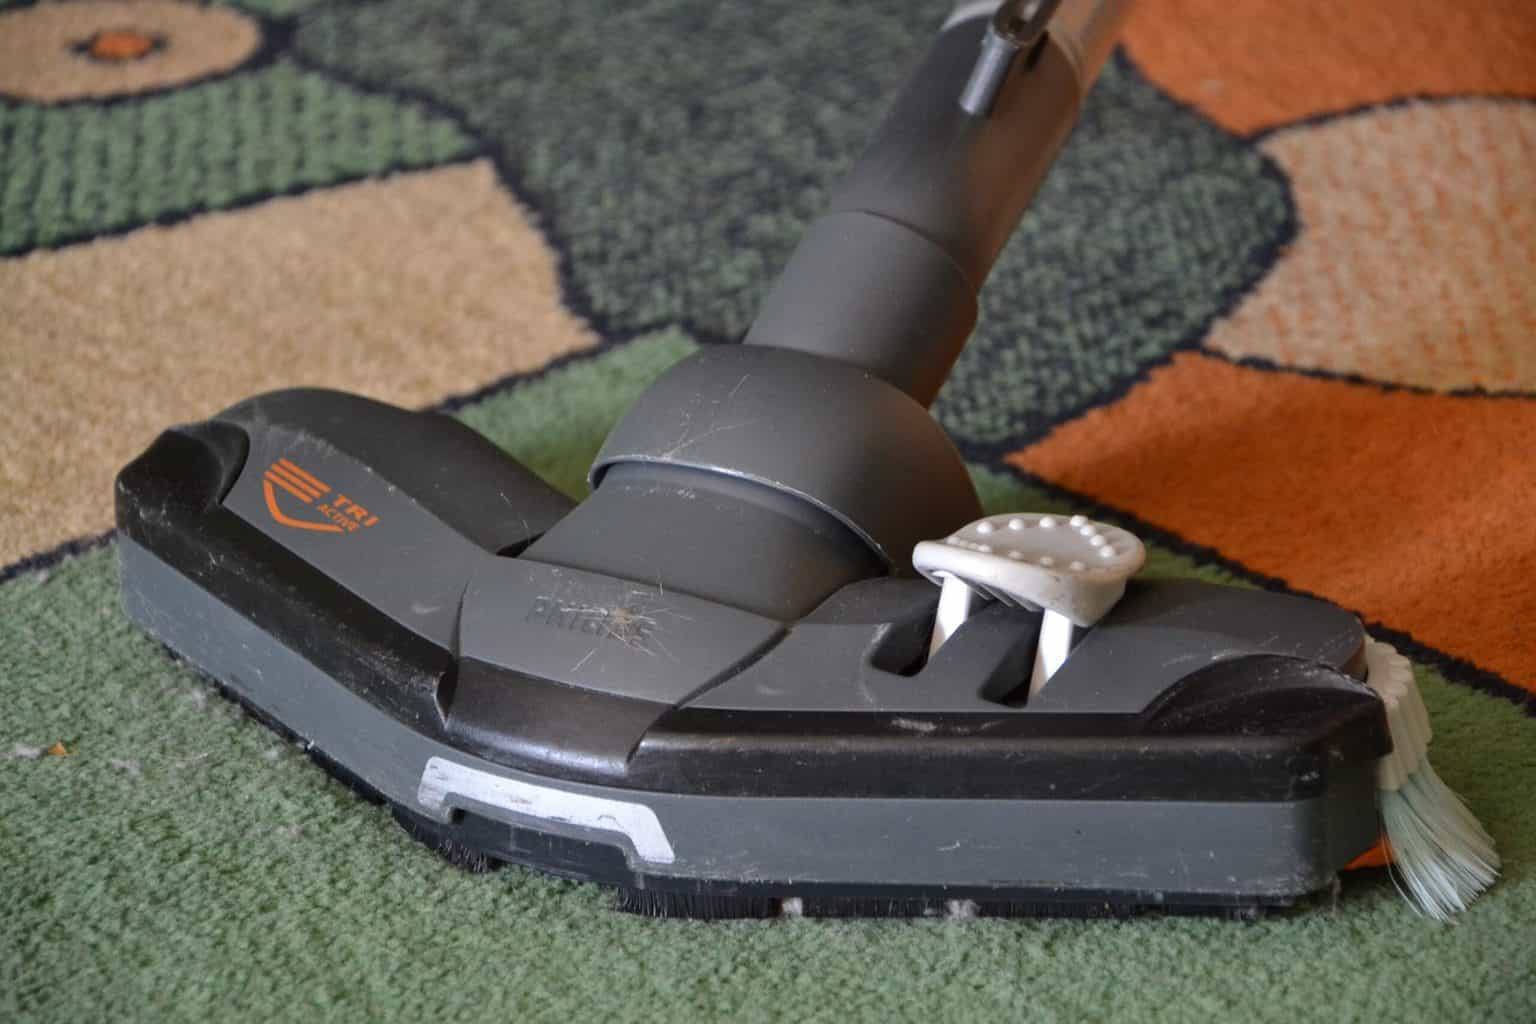 A carpet cleaner with brushes on a multi-toned carpet